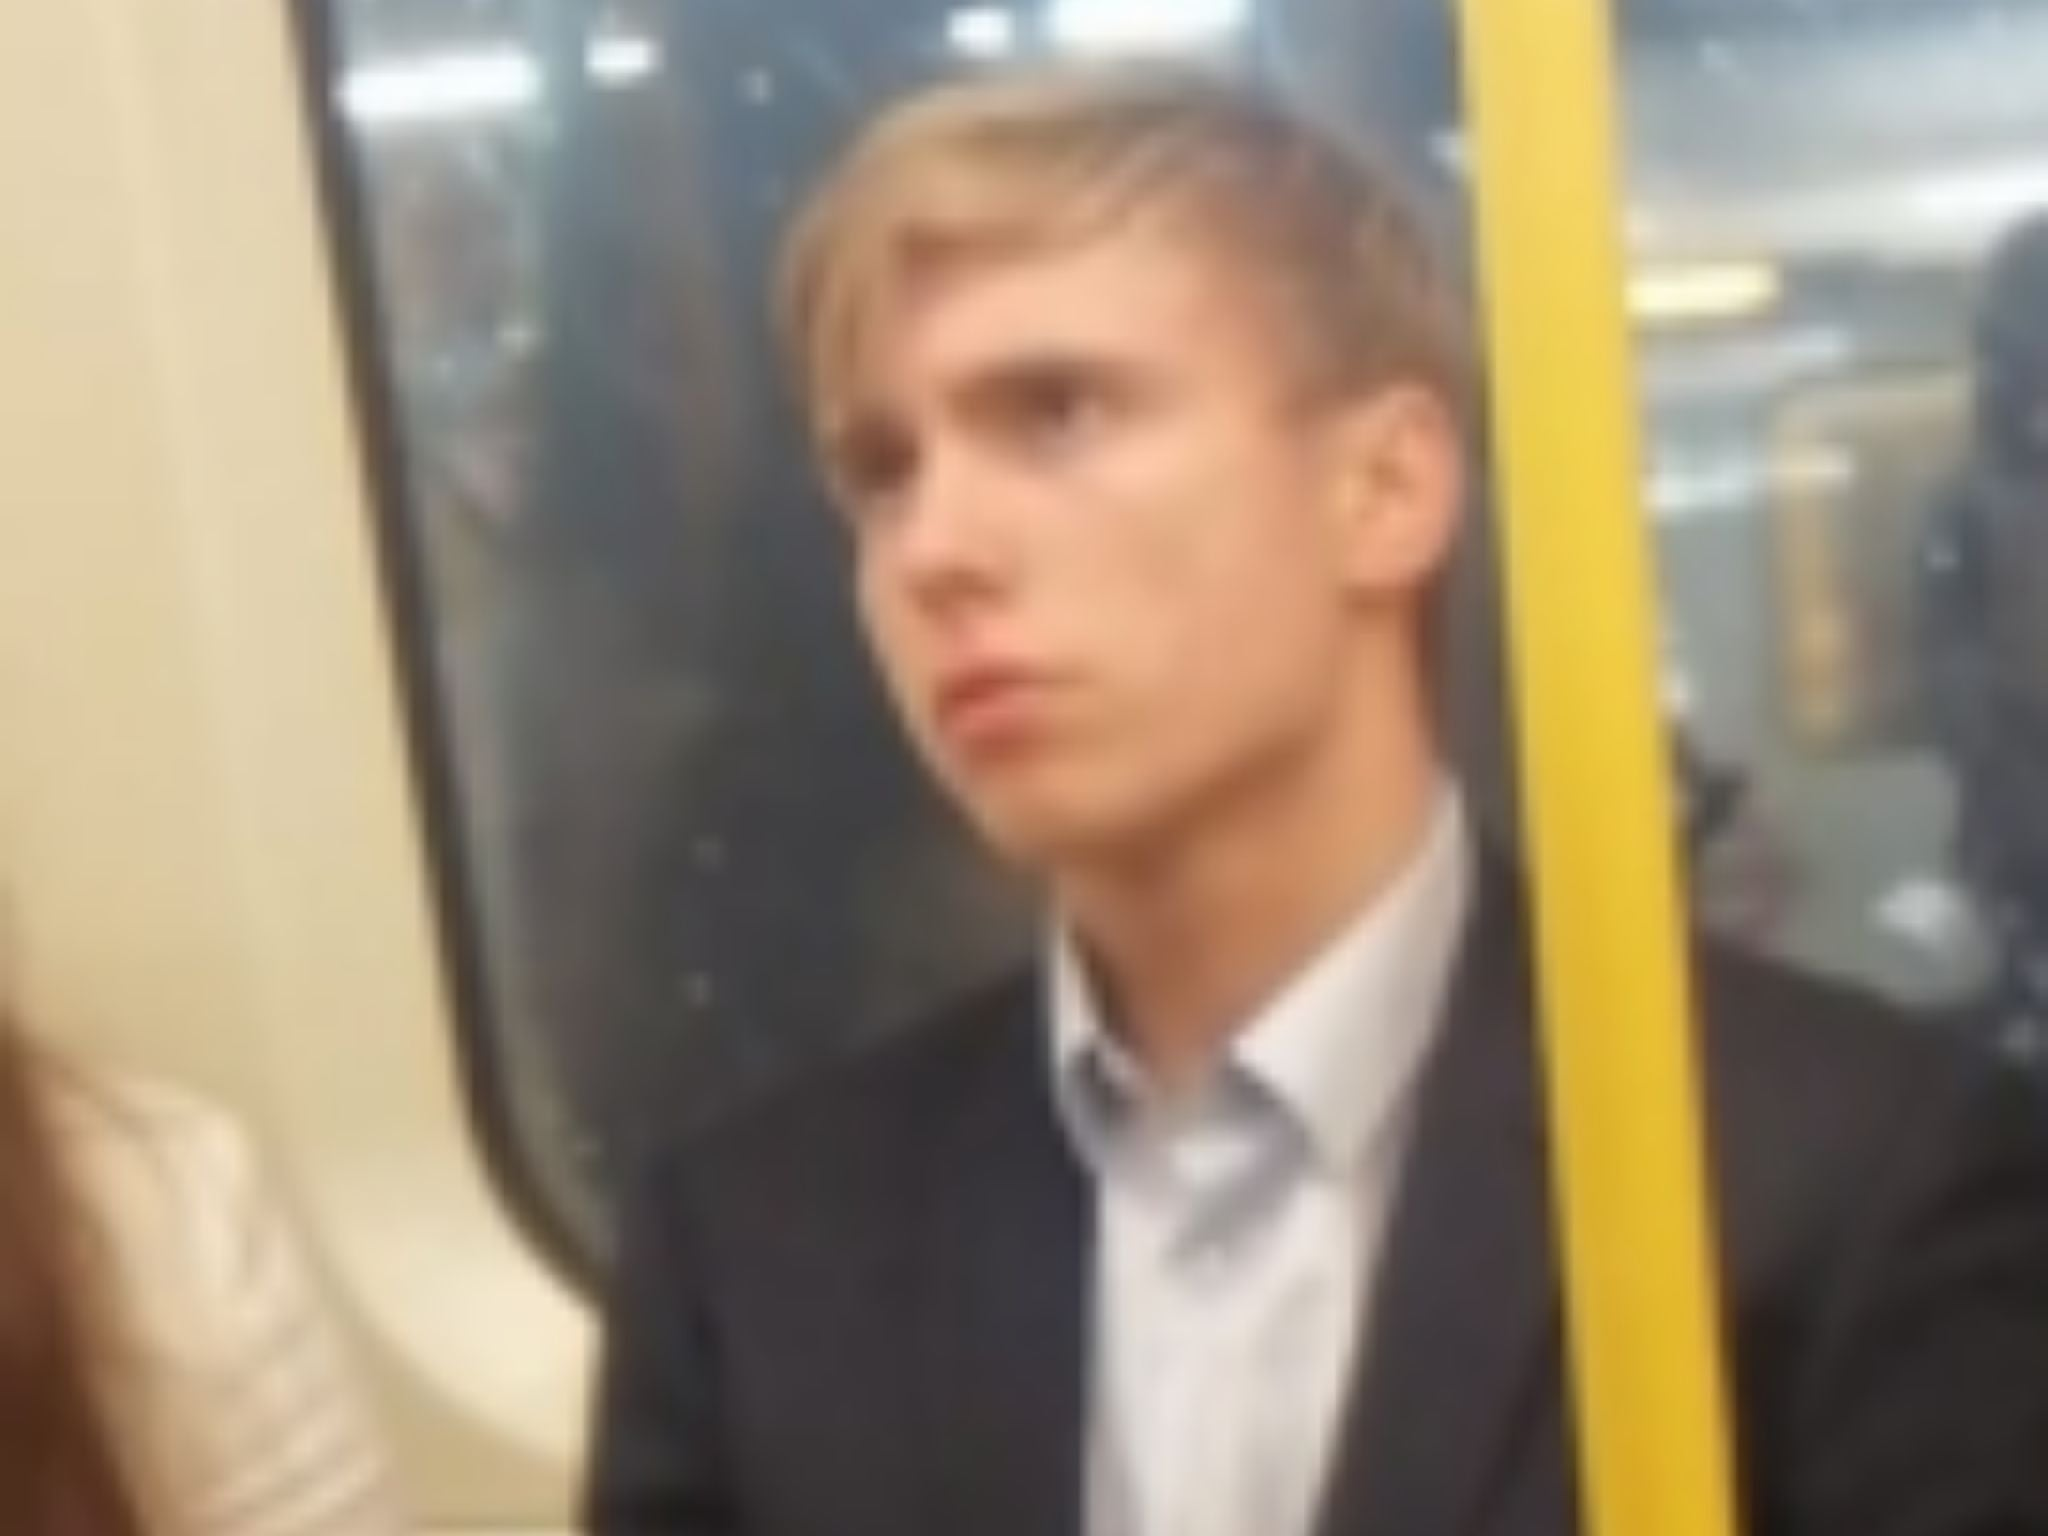 NHS worker punched and thrown from Tube train after confronting passengers for not wearing masks